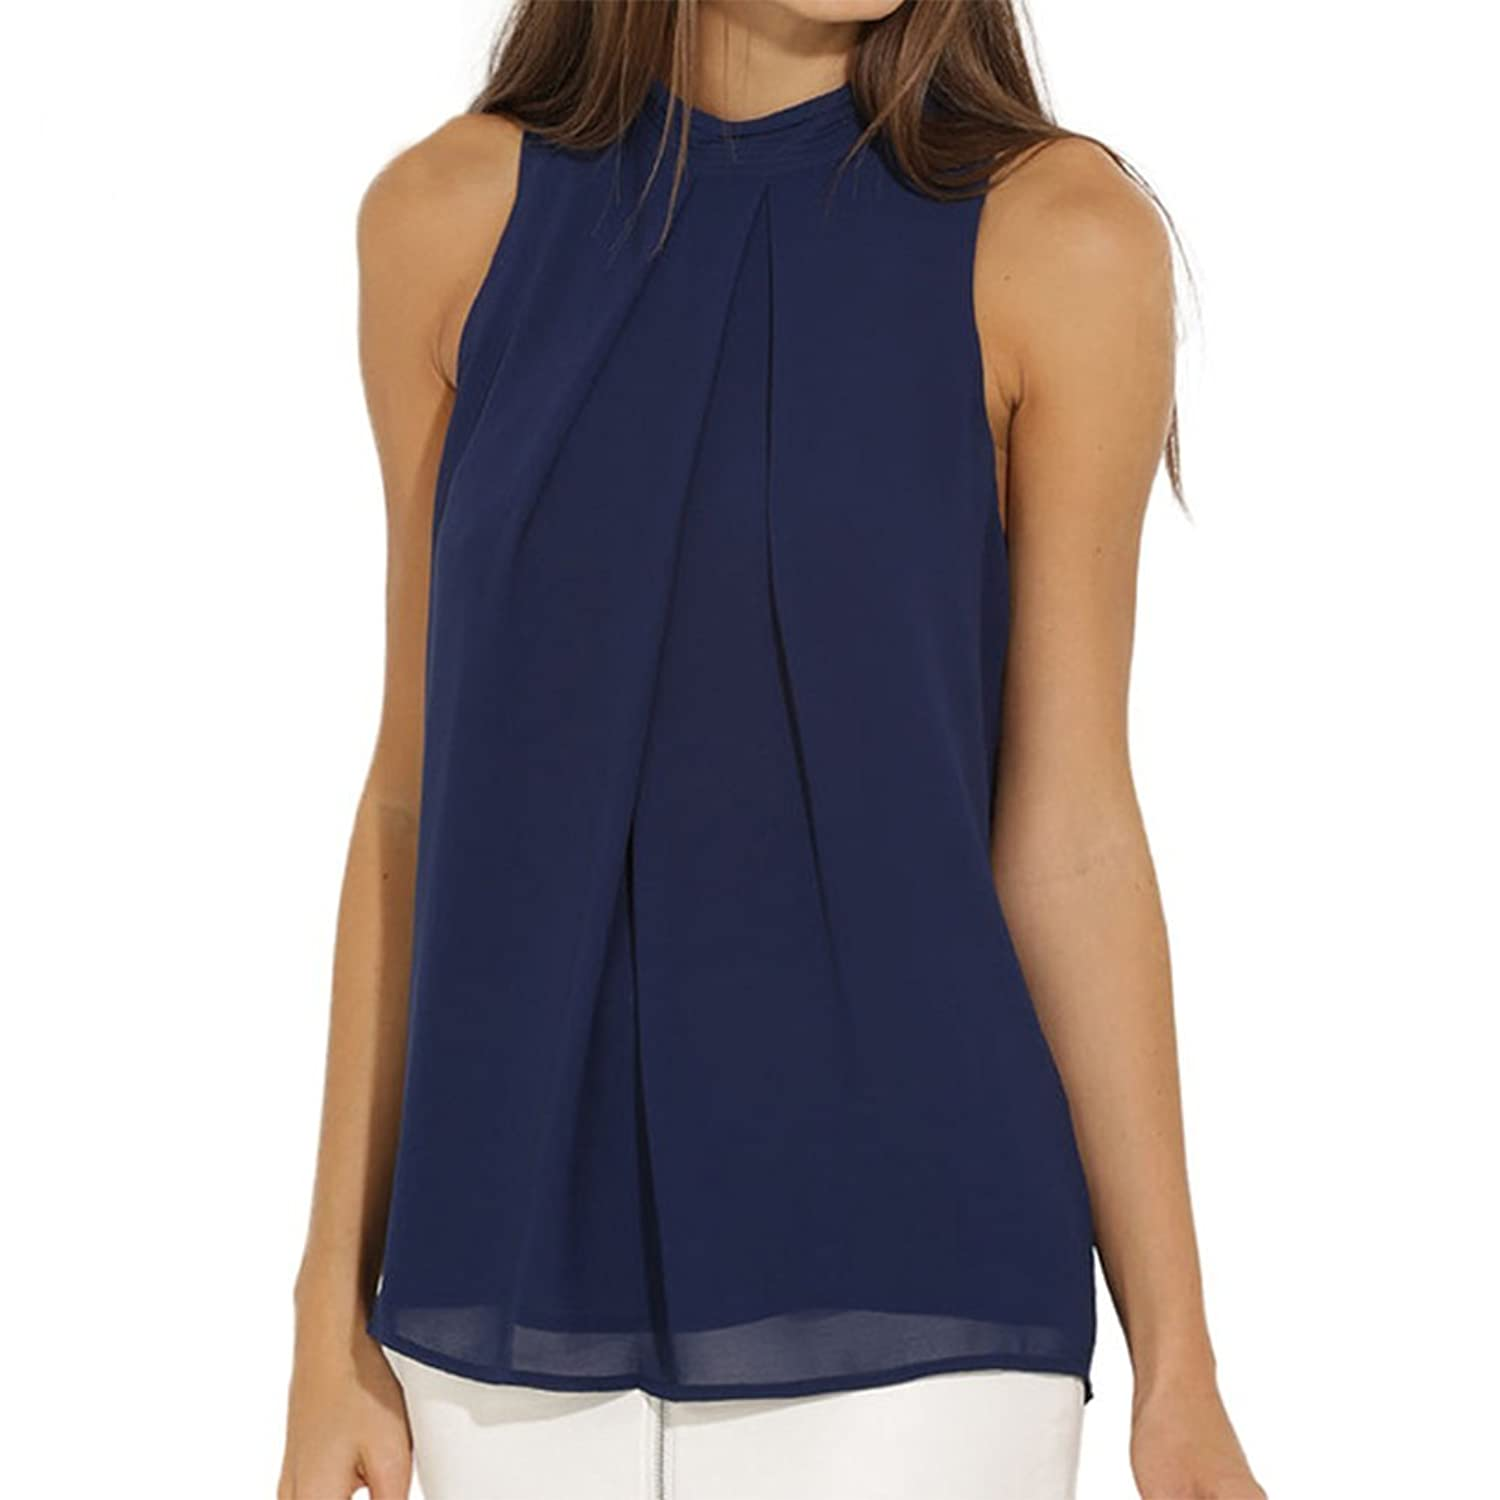 EFINNY Women Summer Chiffon Sleeveless Blouse Tank Shirt Dark Blue